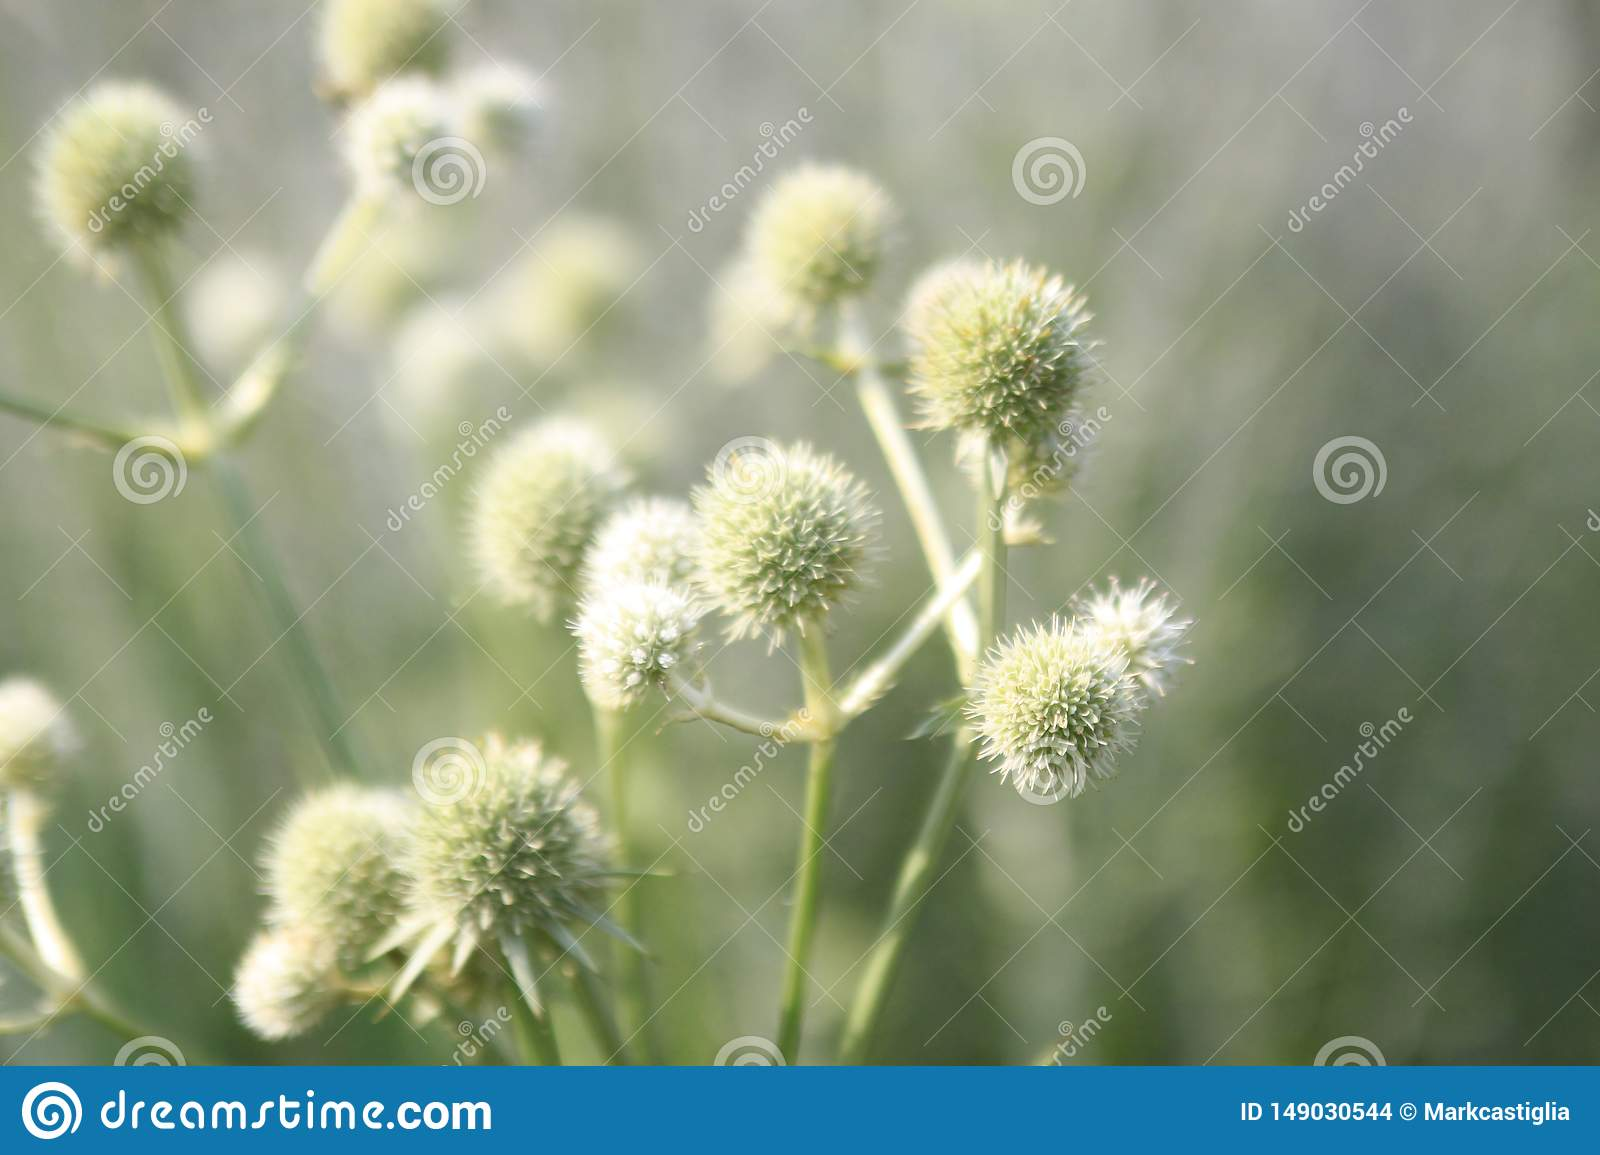 Abstract garden and thistle seeds